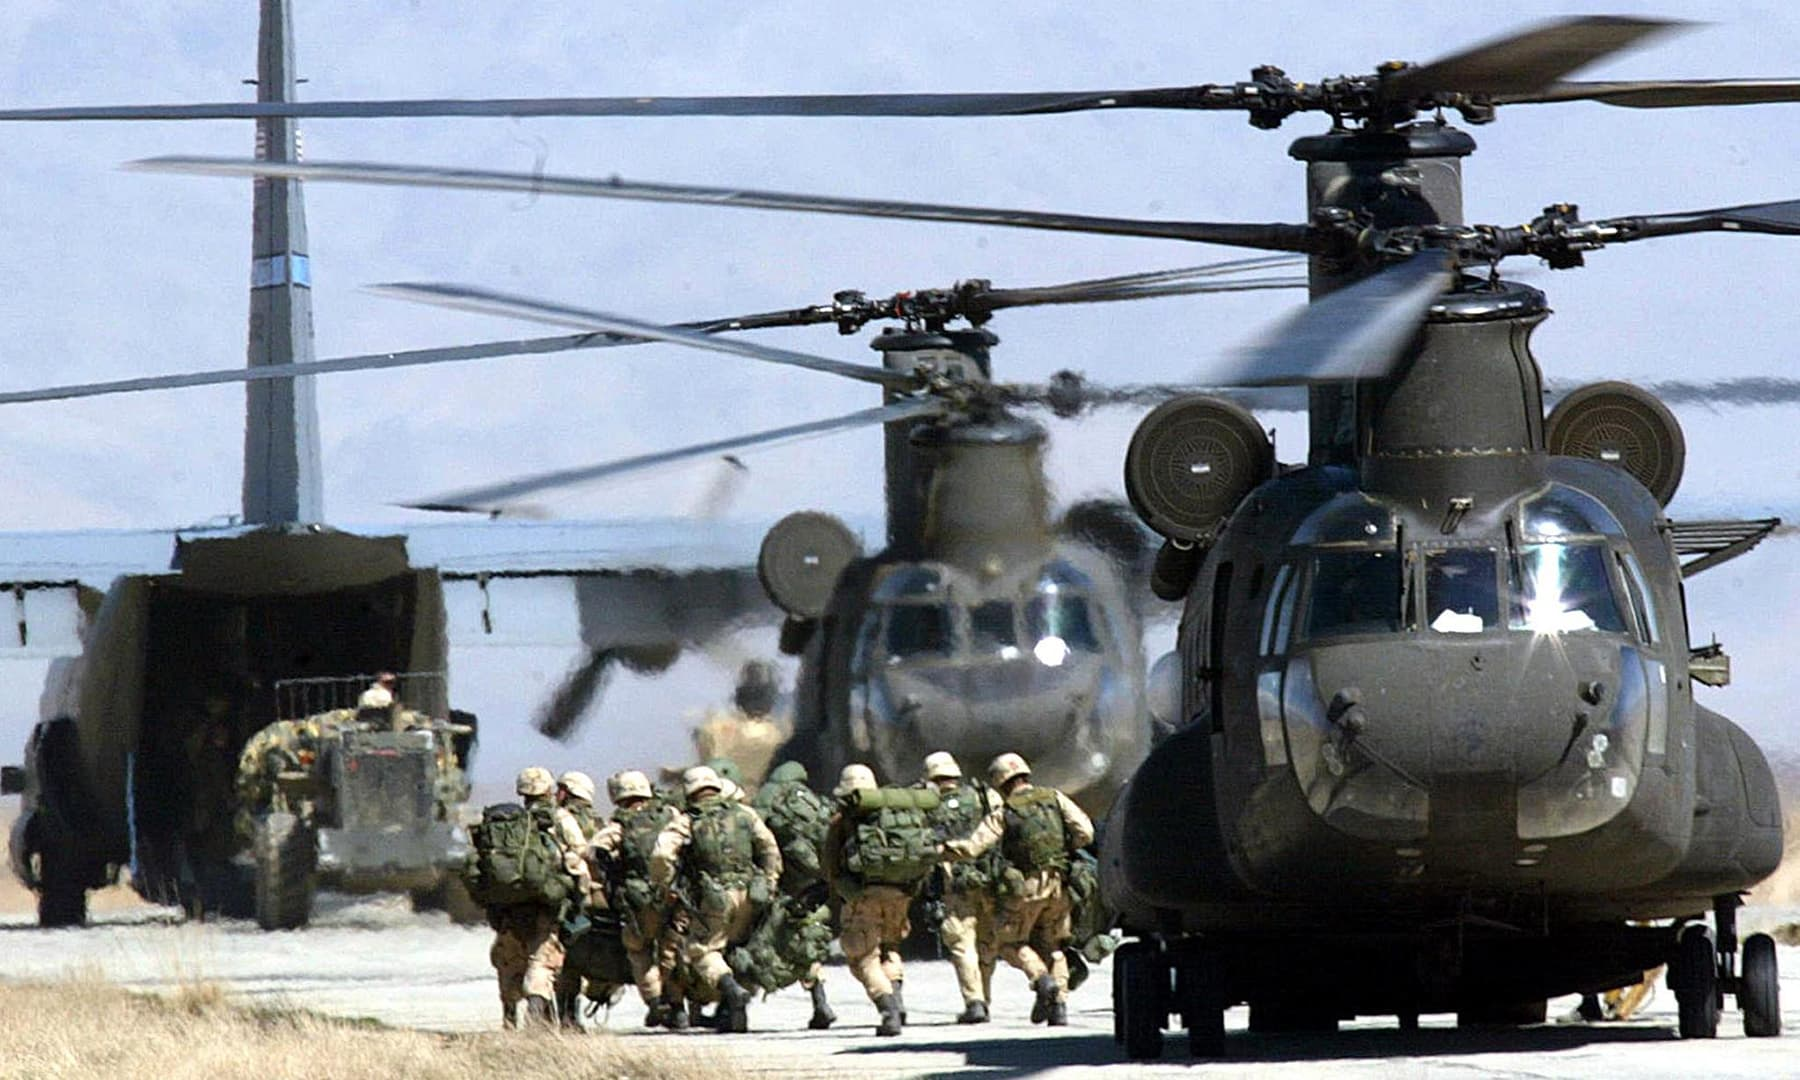 In this file photo taken on March 12, 2002, US soldiers disembark from a CH-46 Chinook helicopter at Bagram Air Base. — AFP